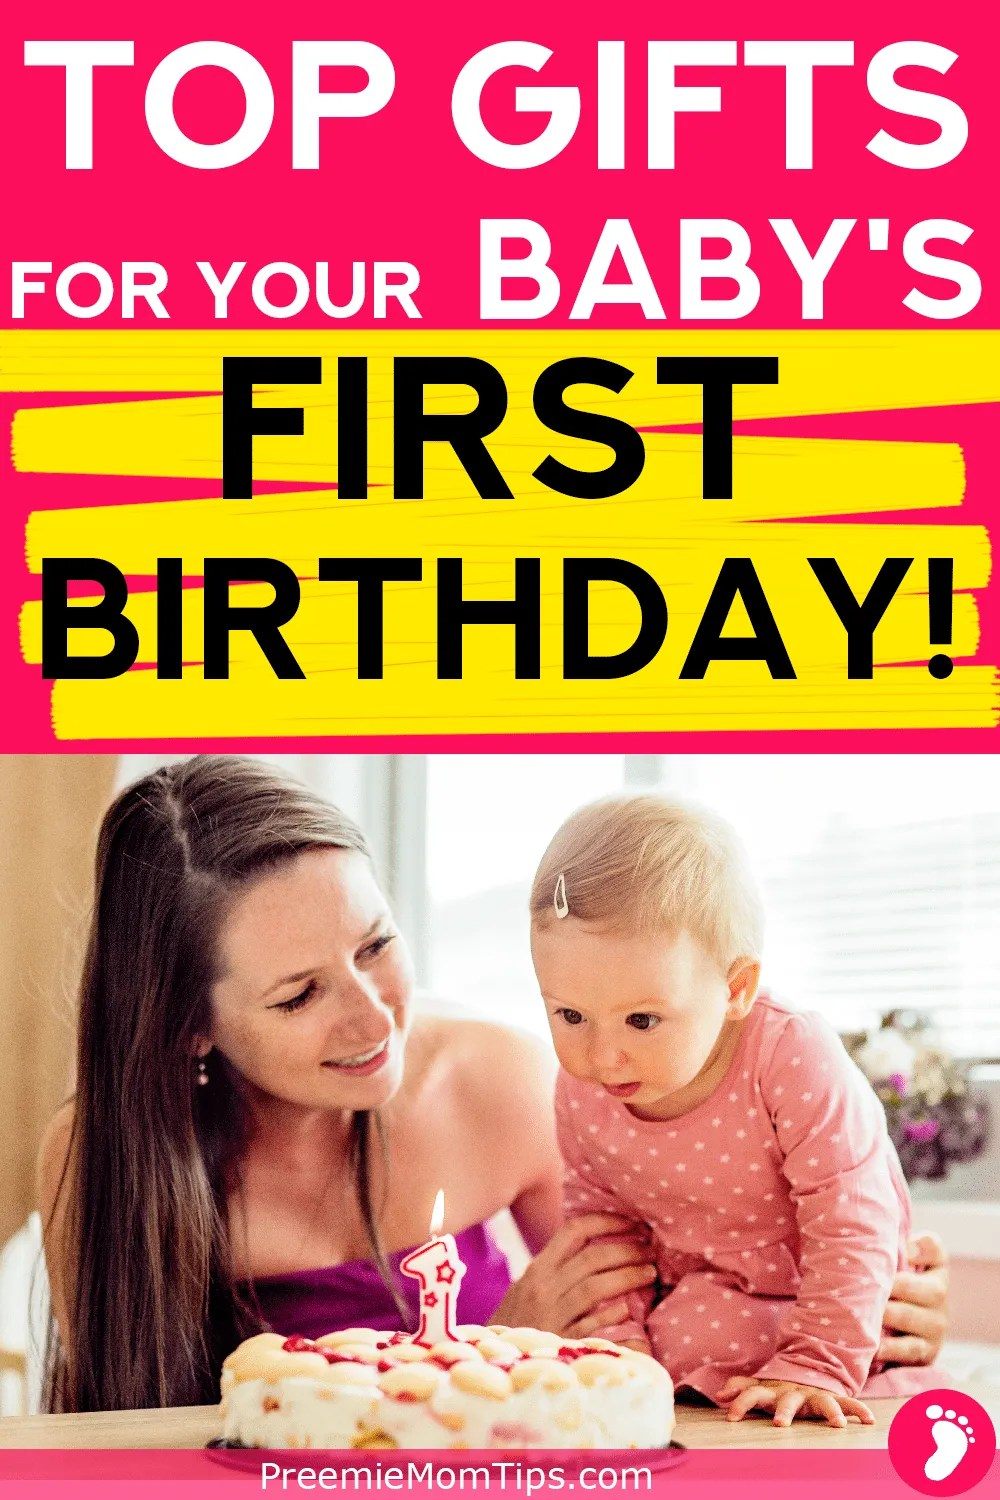 Is your baby turning one? The first birthday is such a wonderful milestones for both babies and parents. Make sure you get your baby the perfect first birthday gift with this comprehensive gift guide!